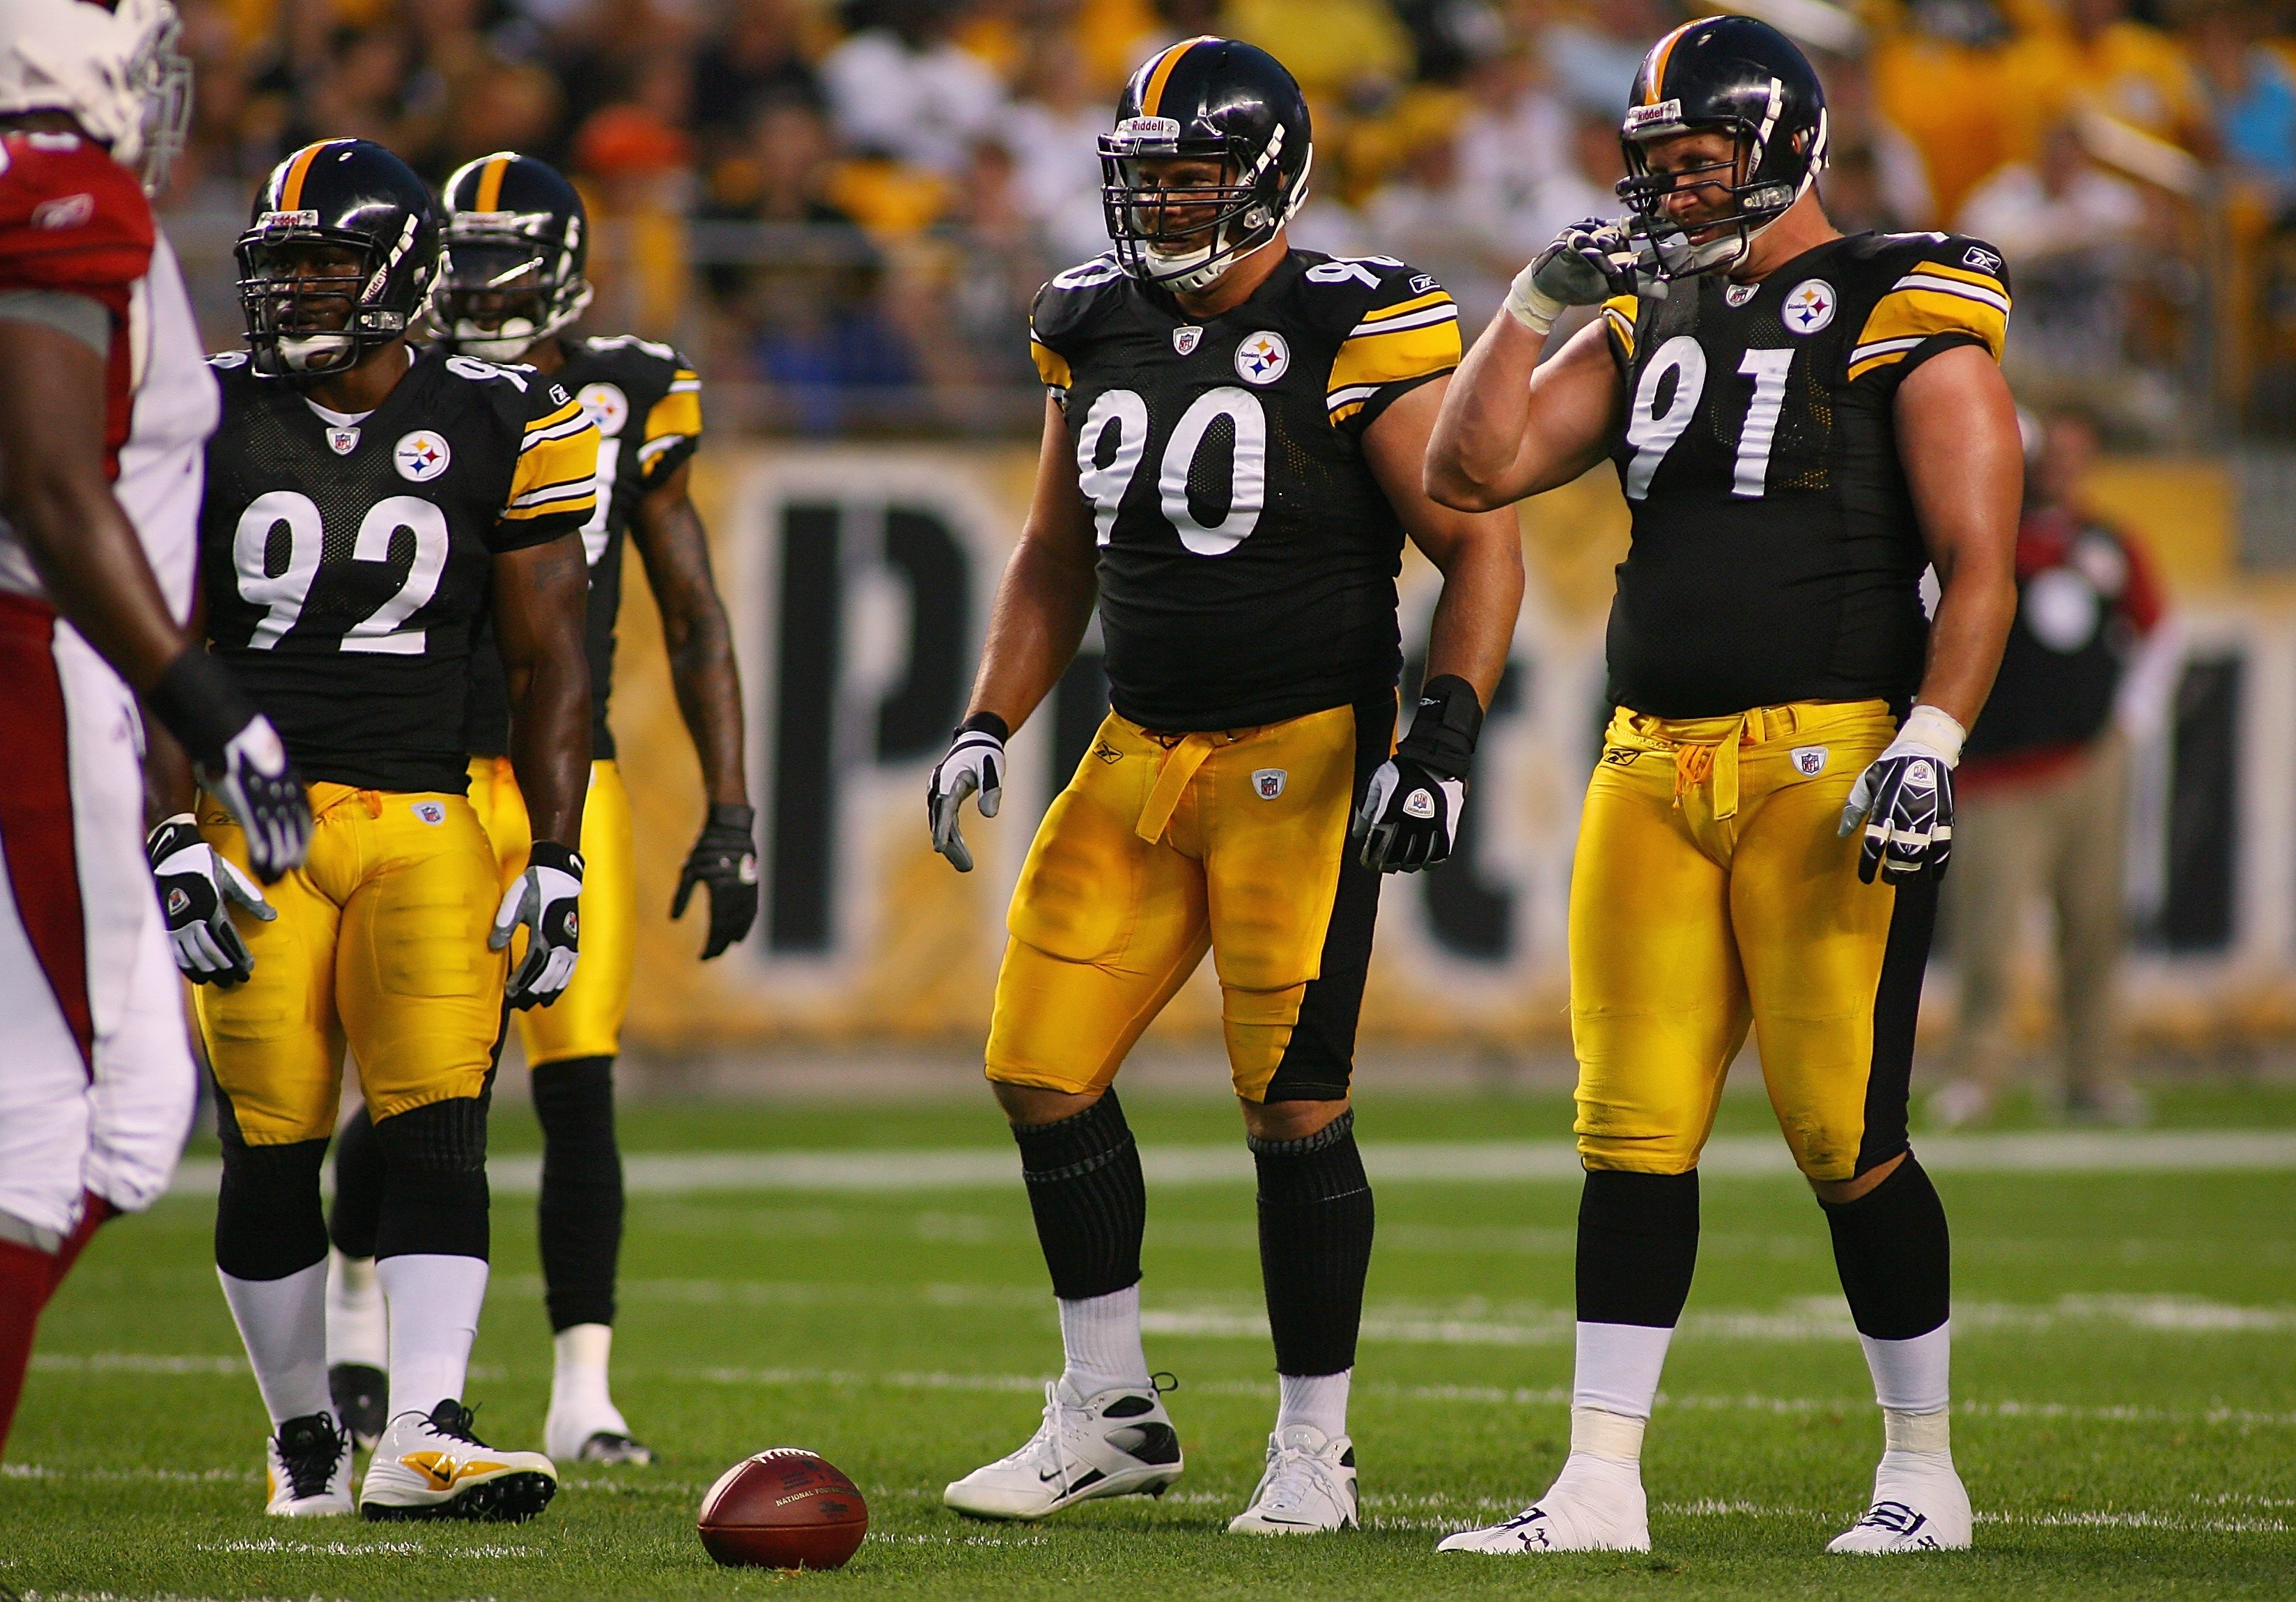 PITTSBURGH - AUGUST 13:  (L-R) James Harrison #92, Travis Kirschke #90, and Aaron Smith #91 of the Pittsburgh Steelers stand at the line of scrimmage during the preseason NFL game against the Arizona Cardinals at Heinz Field on August 13, 2009 in Pittsbur